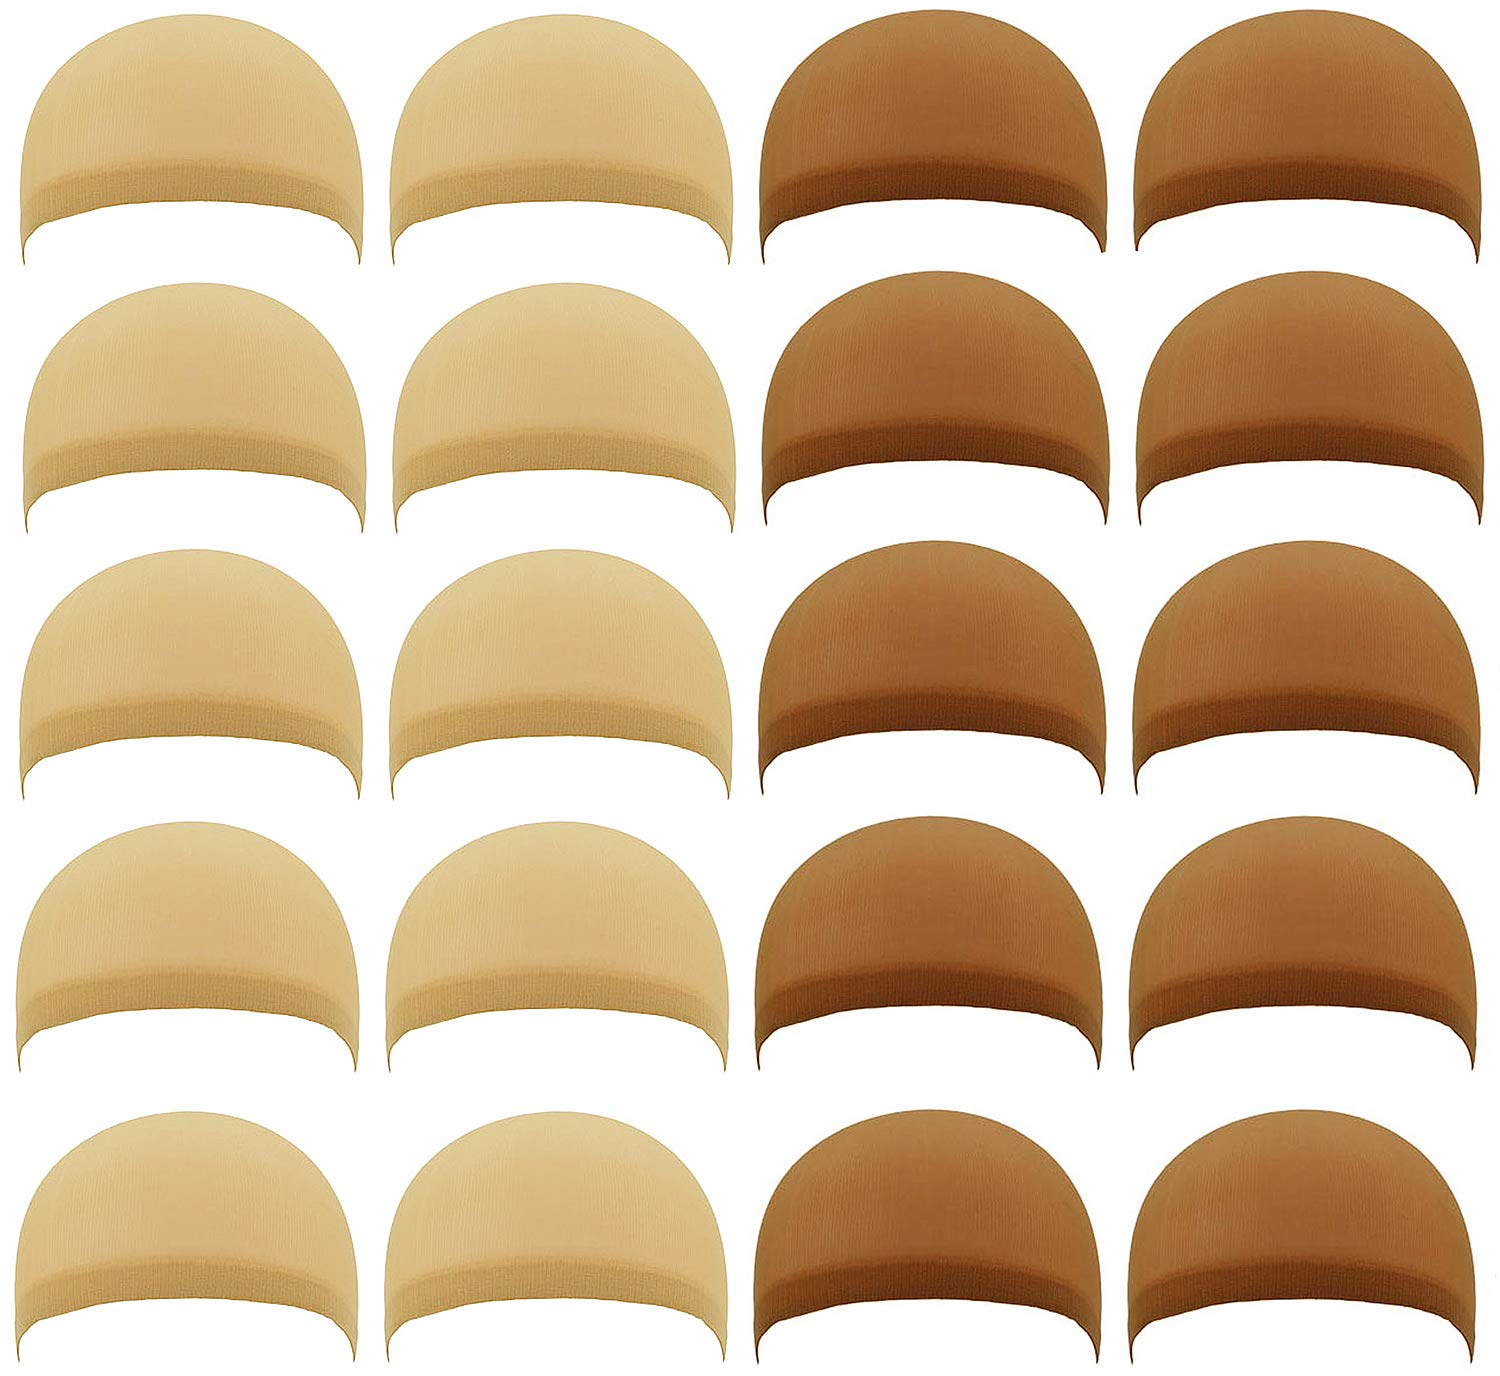 20 PCS Nylon Stretchy Material Our shop most popular Wig PAFOWO All items in the store Caps B Natural 10